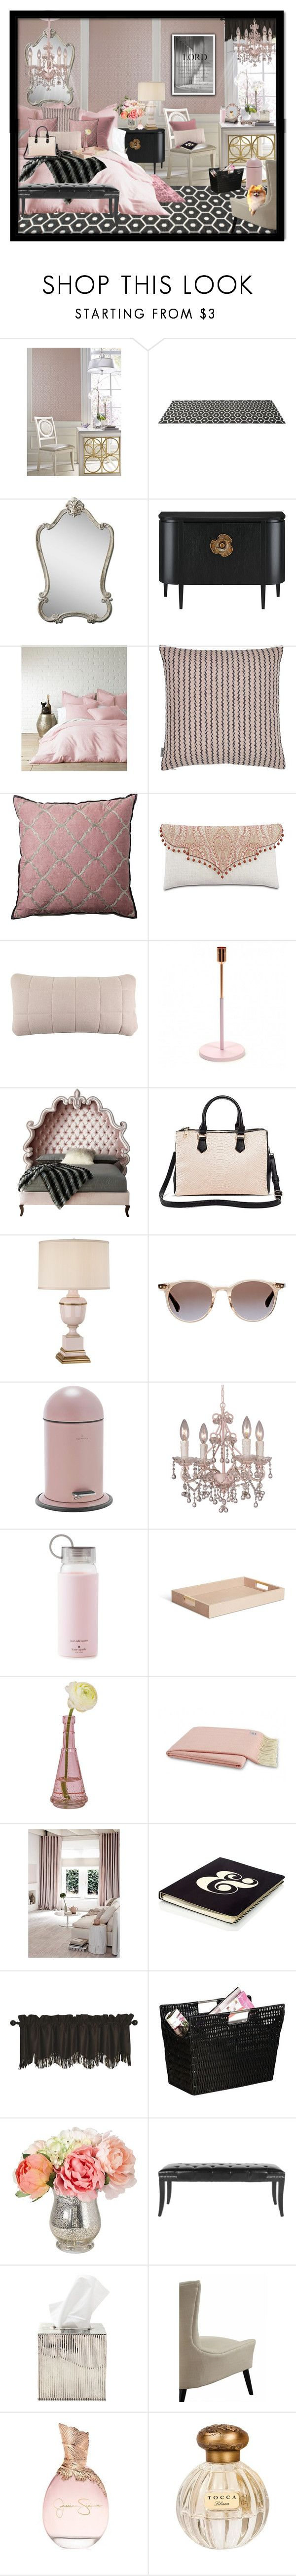 """Blush & Black"" by julissag ❤ liked on Polyvore featuring interior, interiors, interior design, home, home decor, interior decorating, York Wallcoverings, Pappelina, Uttermost and Levtex"